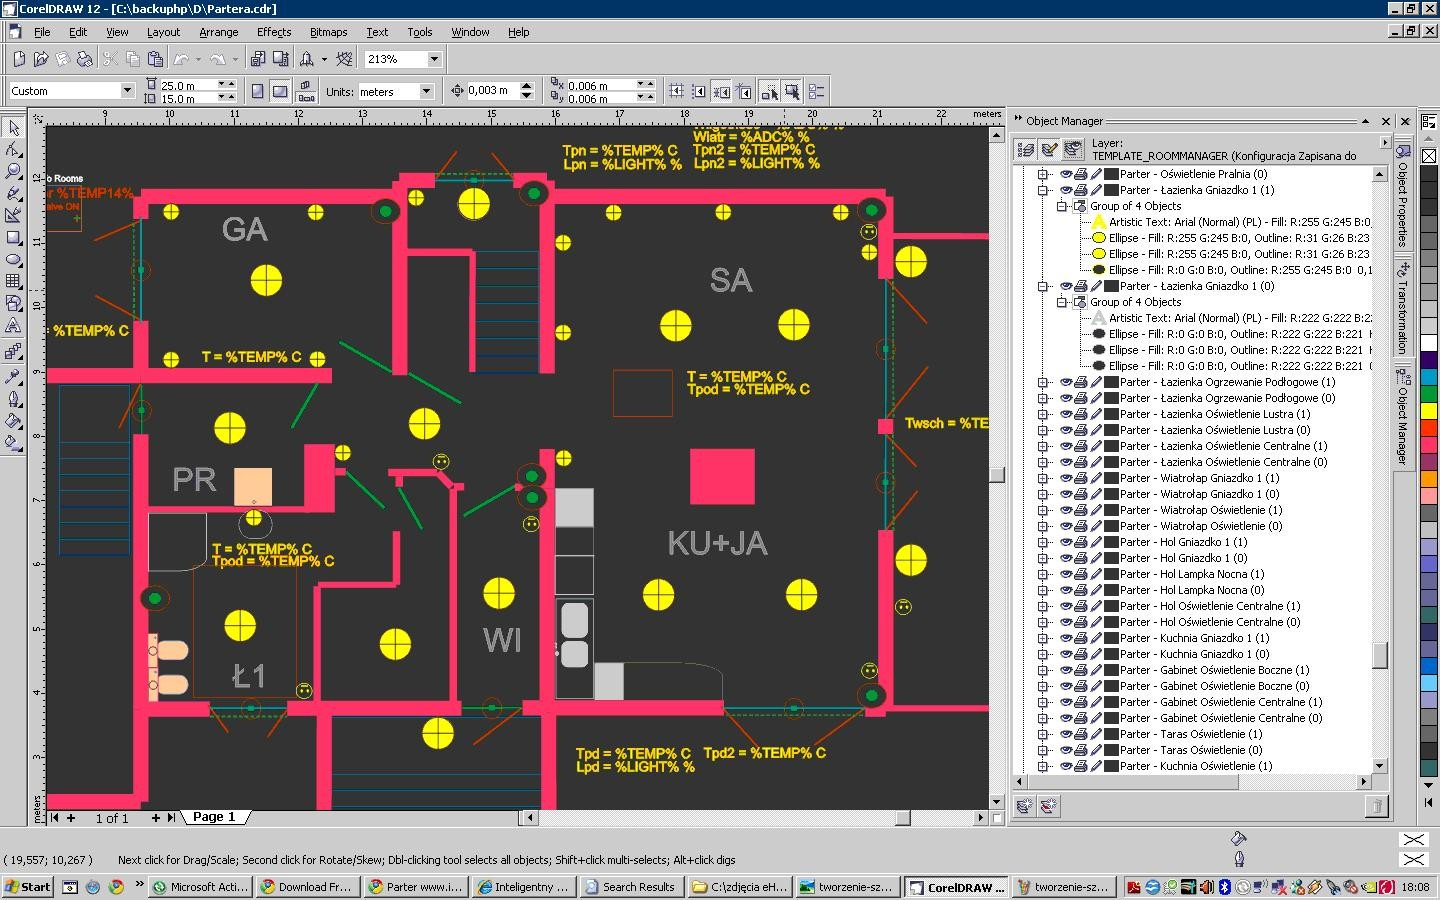 drawing objects on individual layers associated with events eHouse system , state outputs , input , measuring inputs .